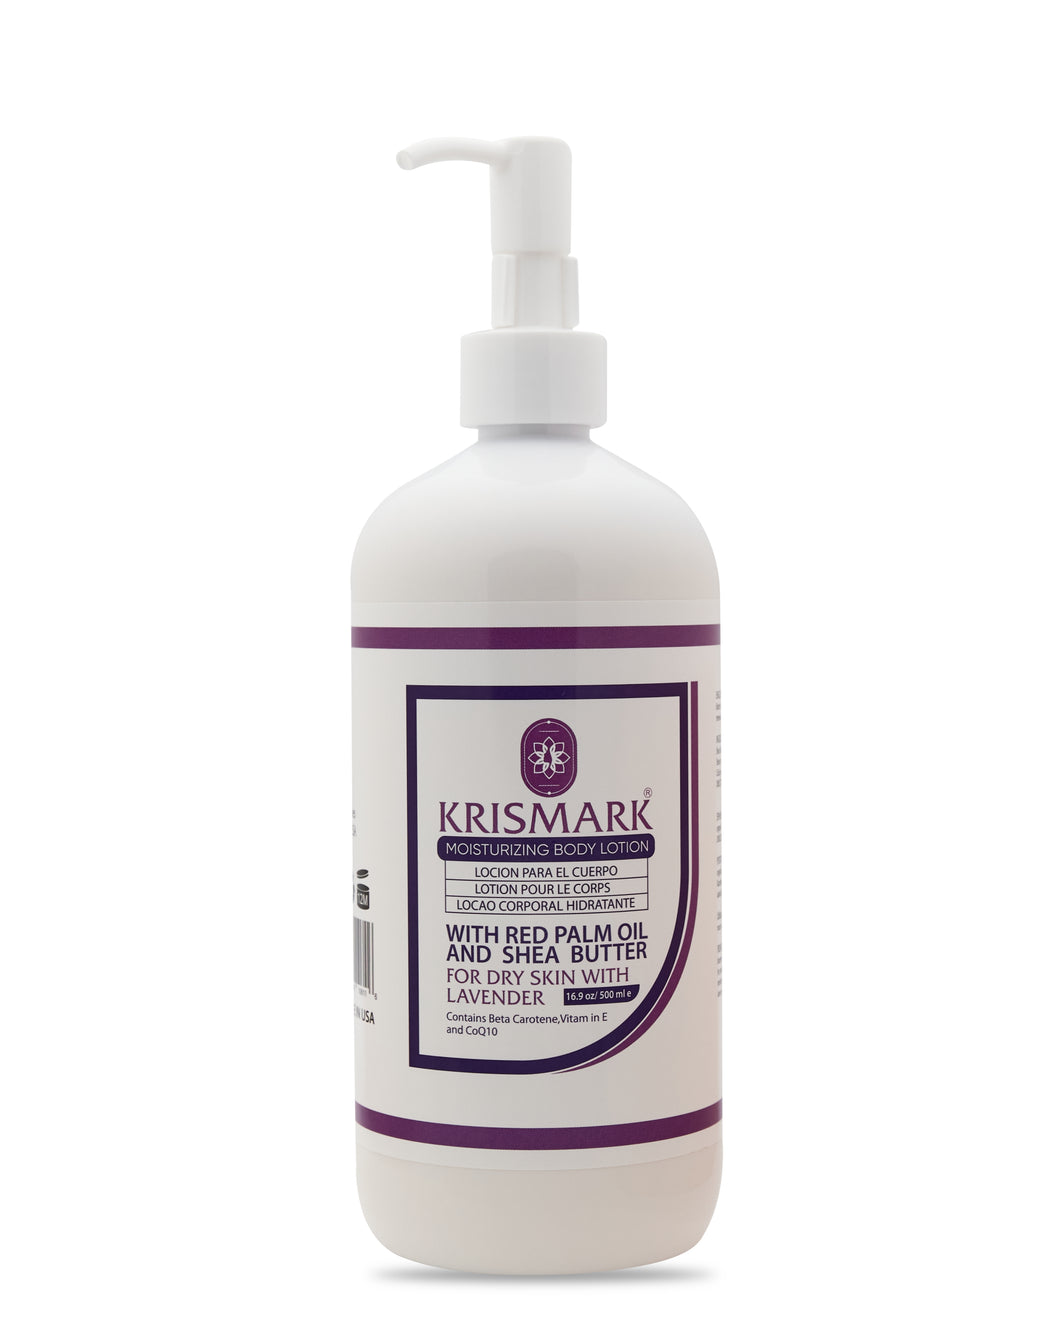 Krismark Body Lotion with Red Palm Oil